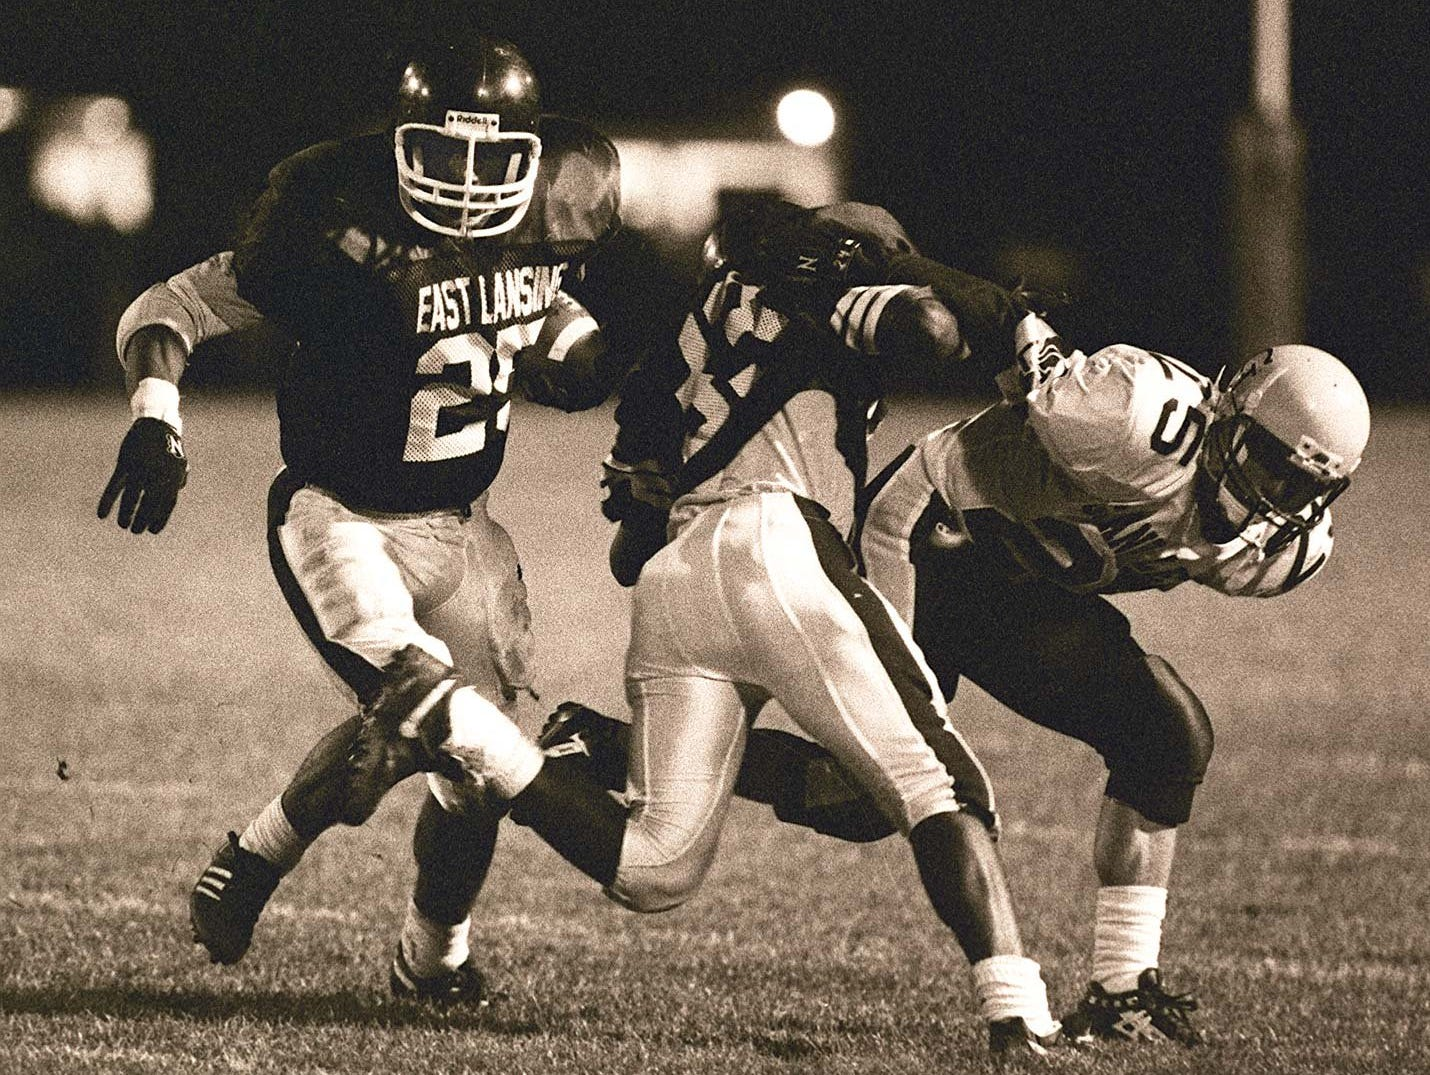 East Lansing's Randy Kinder cuts upfield during a 1992 game against Grand Ledge. Kinder rushed for a then-Mid-Michigan record 2,464 yards in his senior season. He went on to rush for 2,295 yards at Notre Dame.